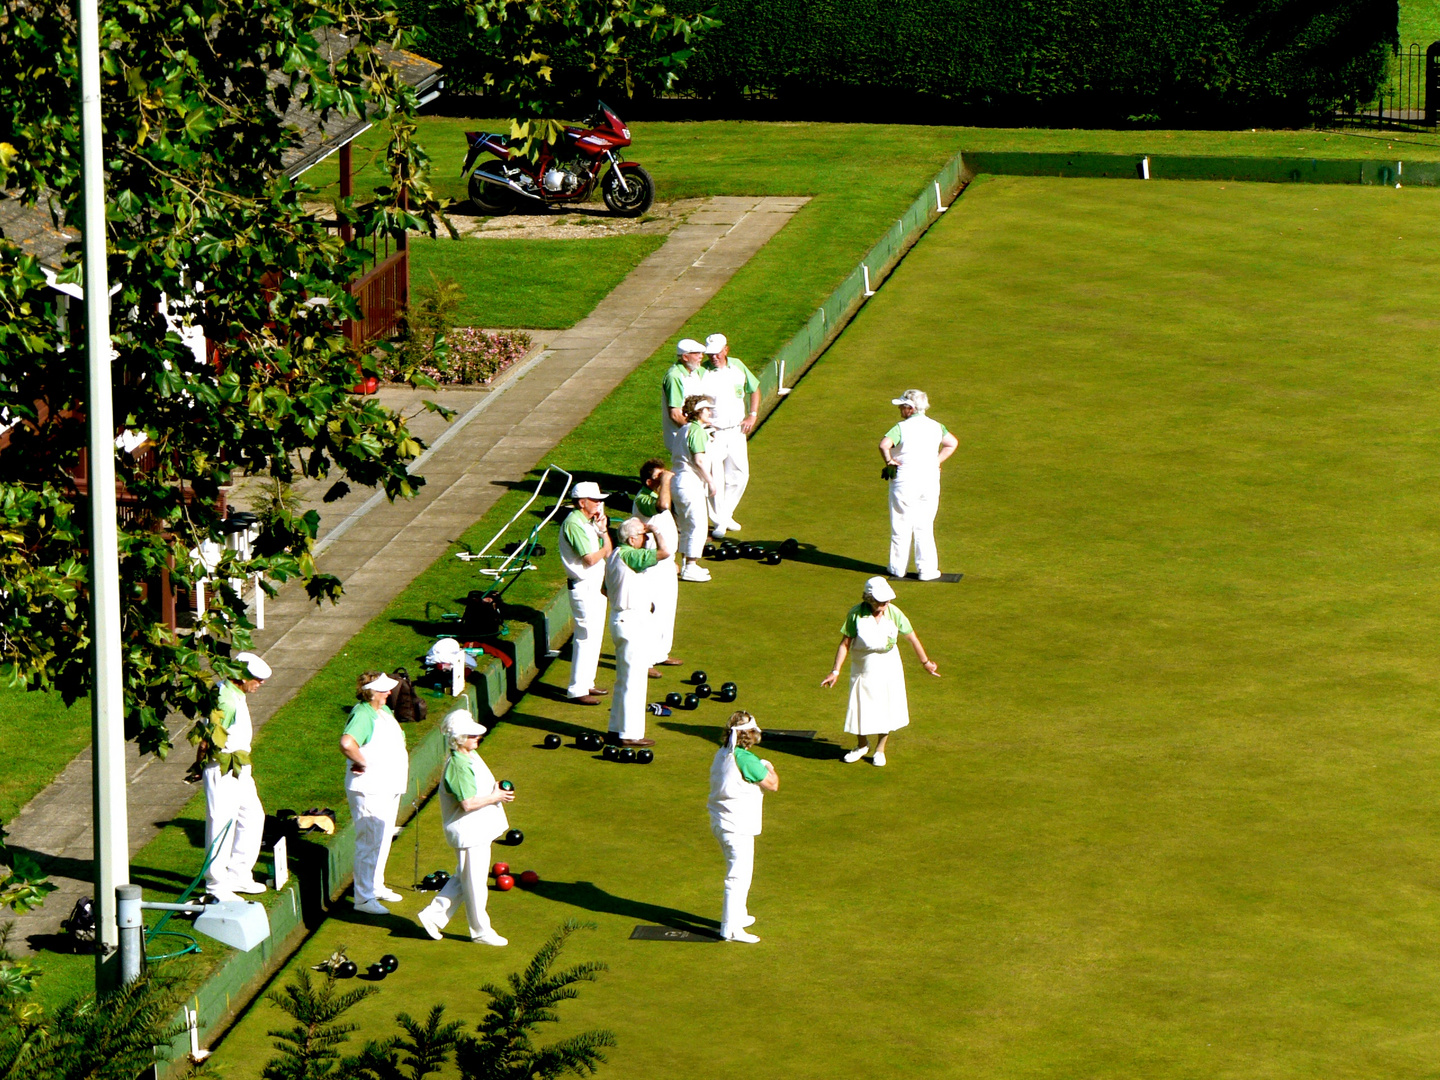 Some Residents of Rye at their Saturday's Bowling Green